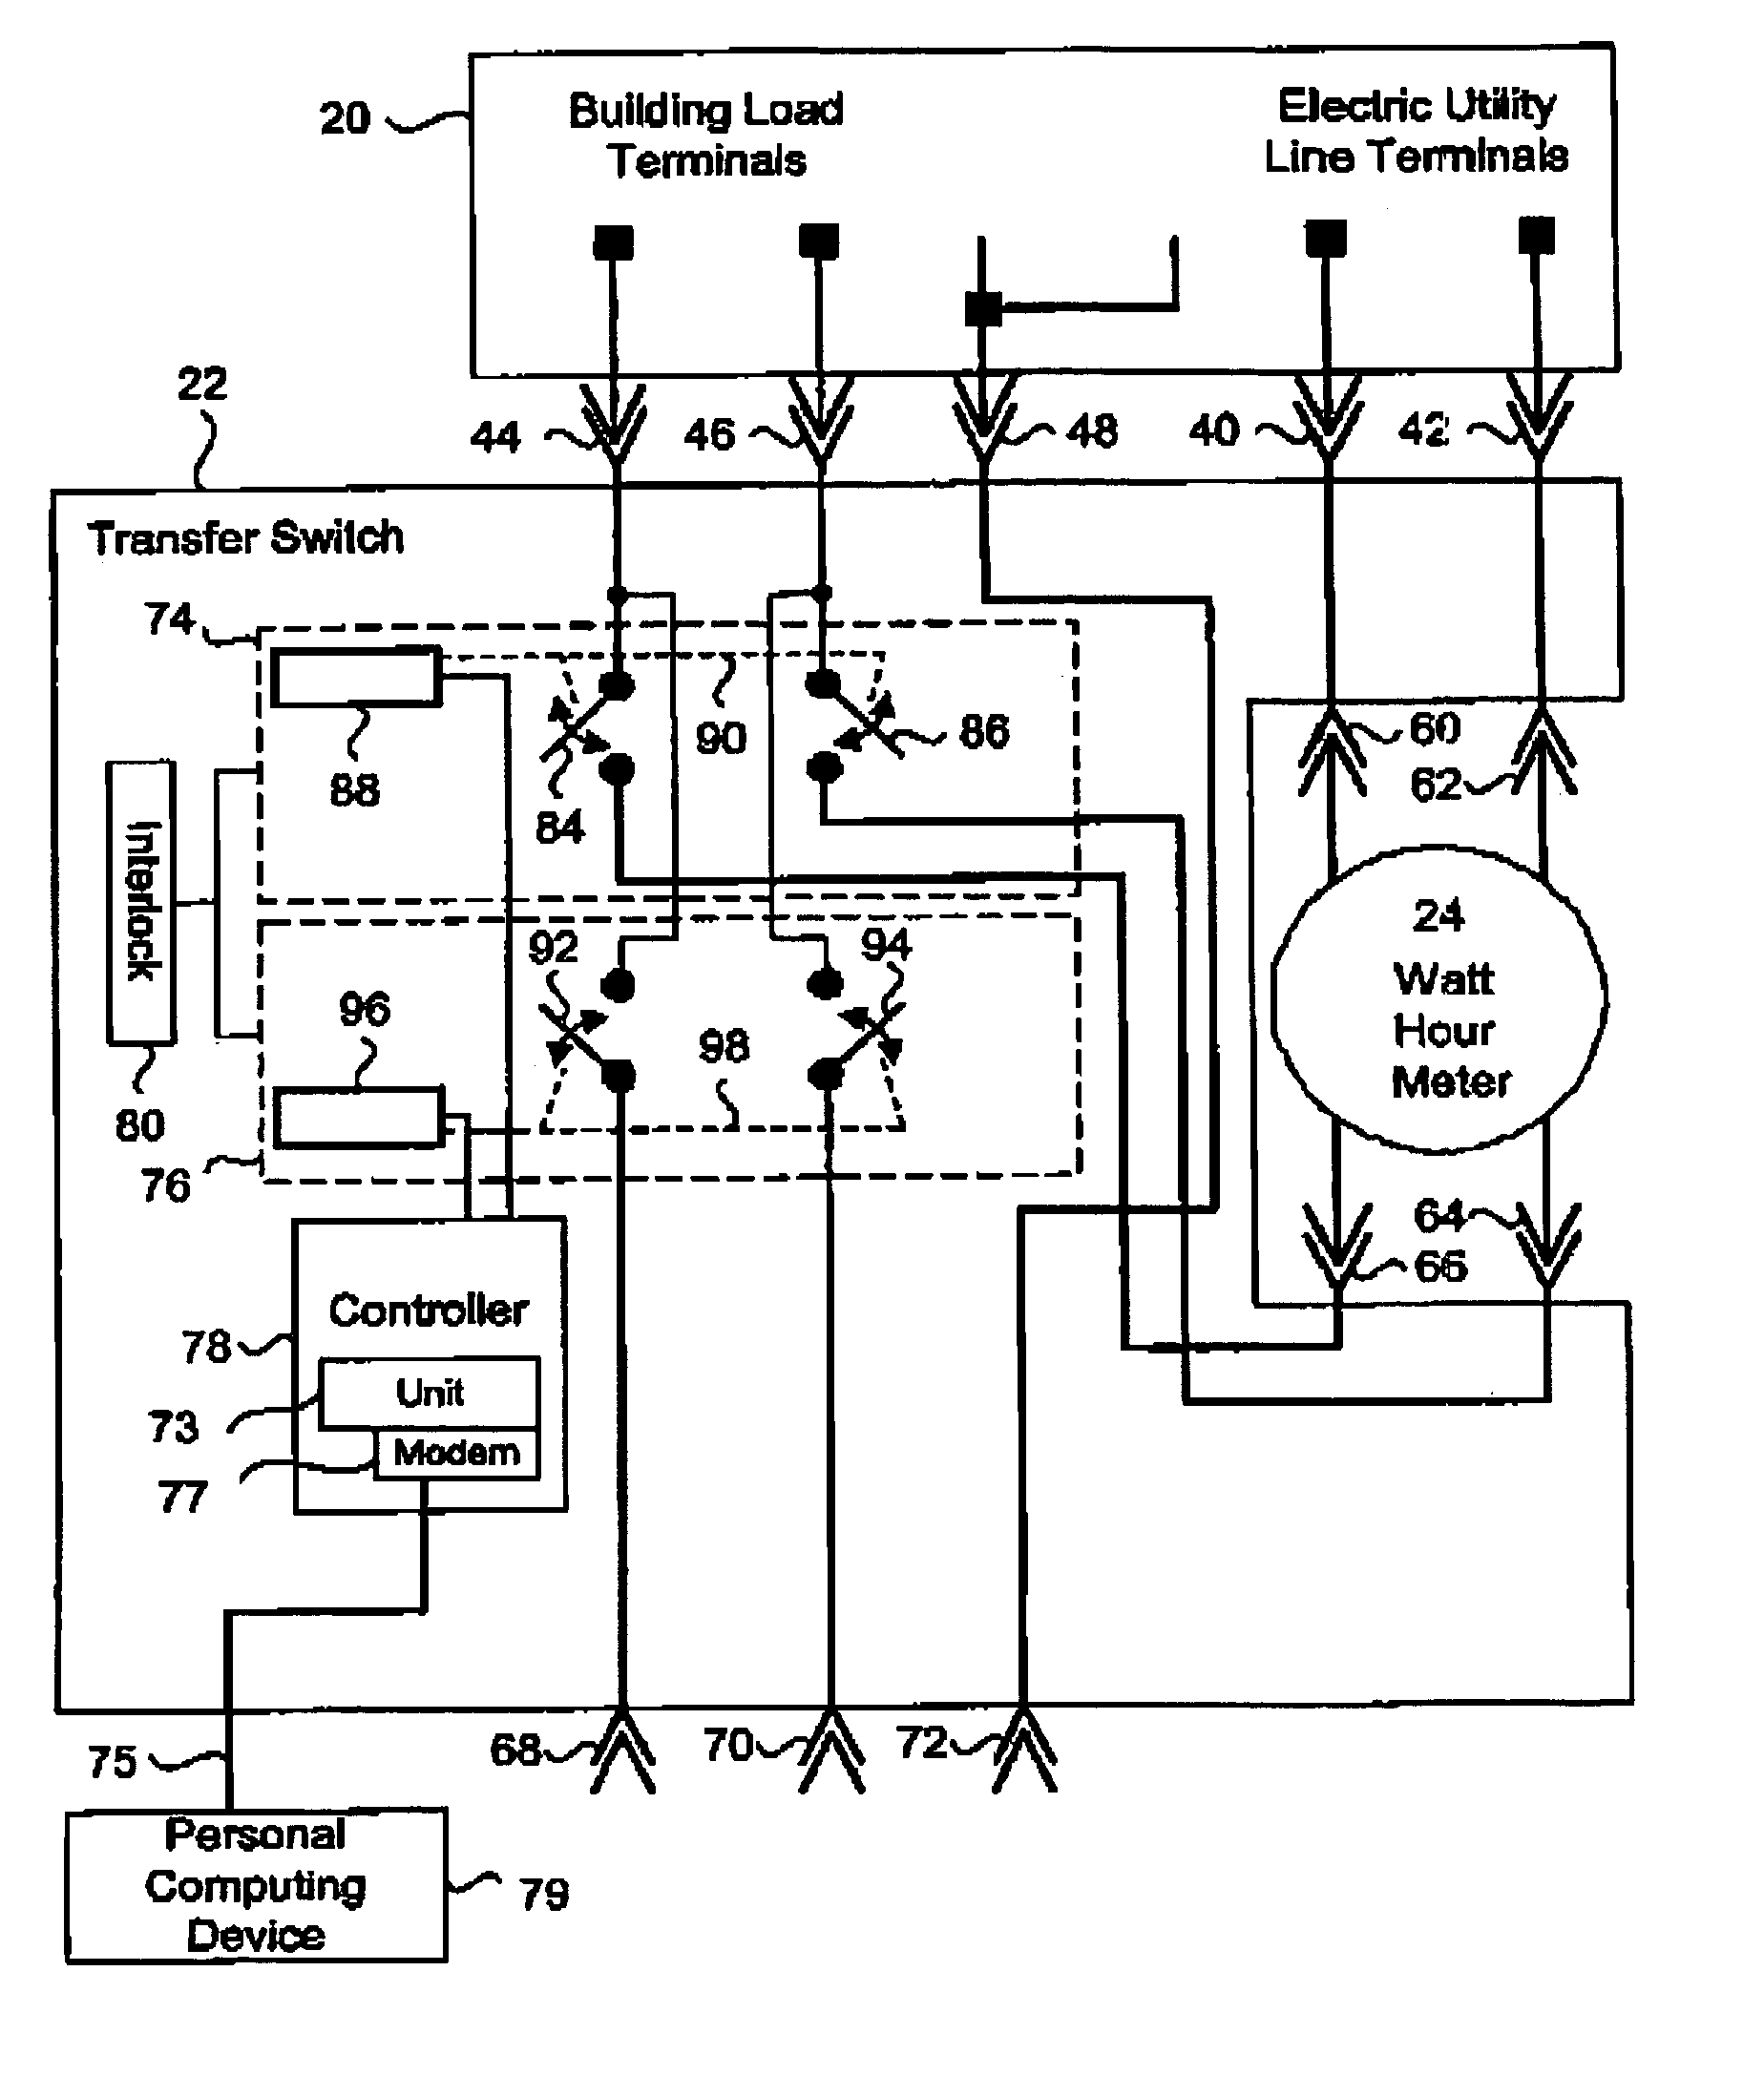 Case Ignition Switch Wiring Diagram - Wiring Diagrams Folder on